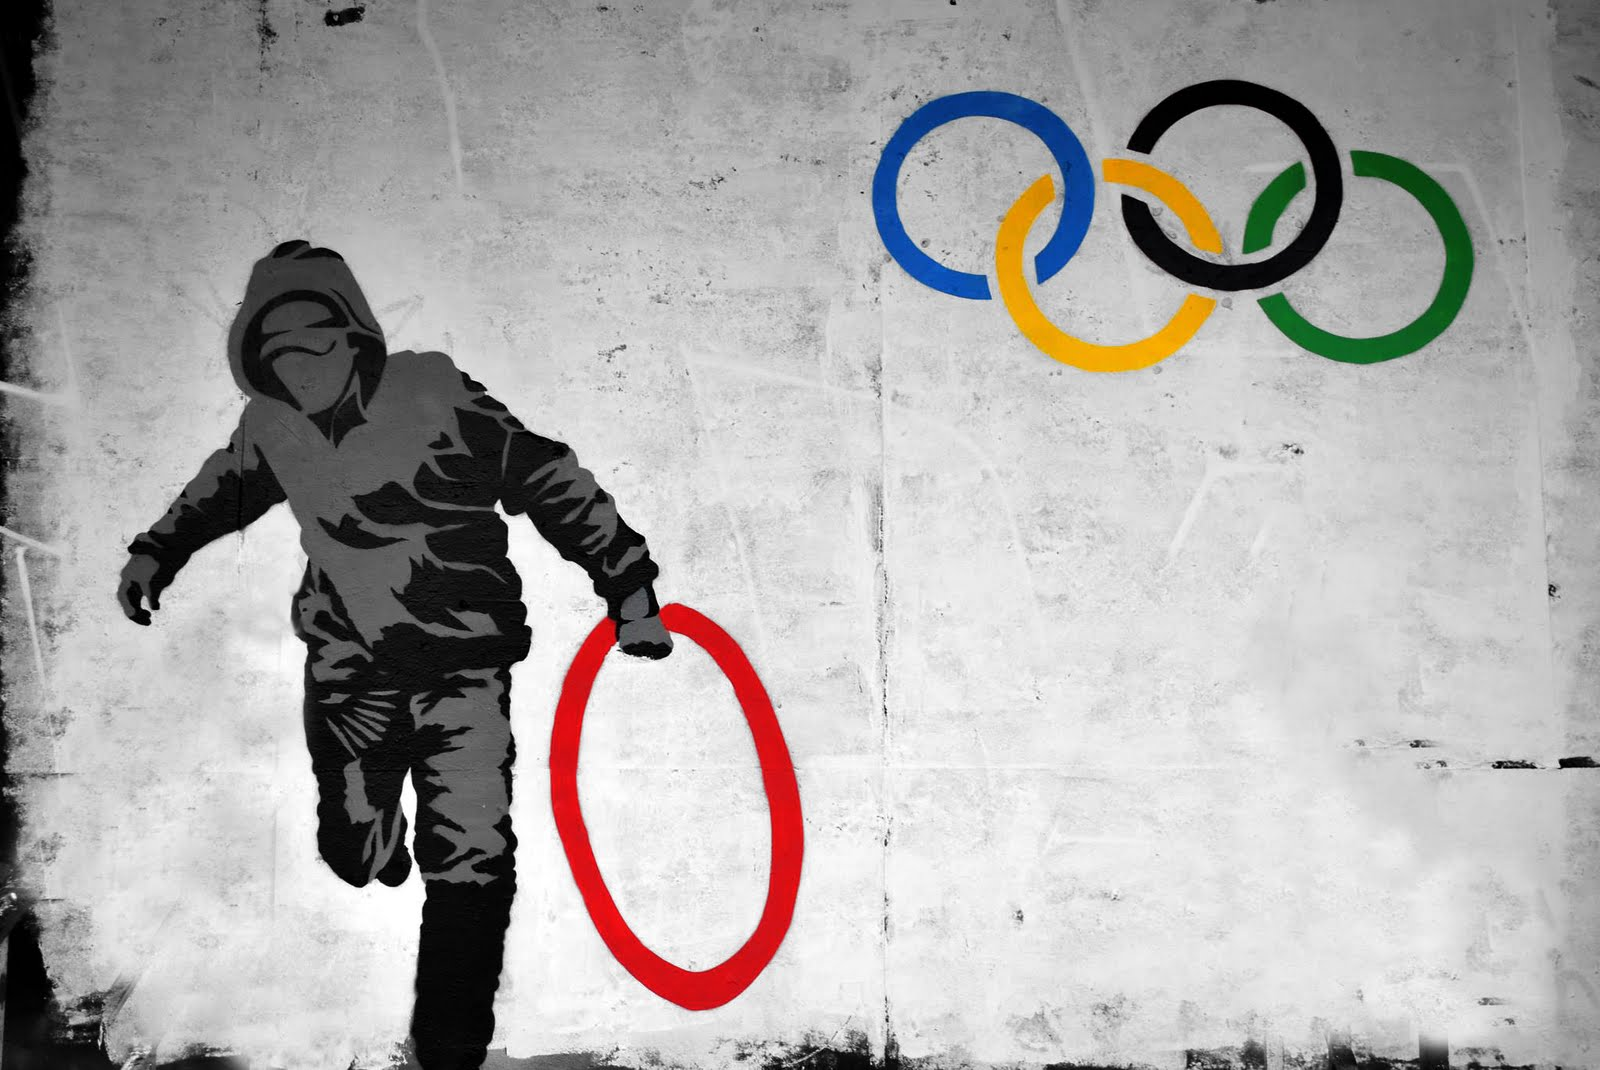 Will The Real Banksy Please Stand Up